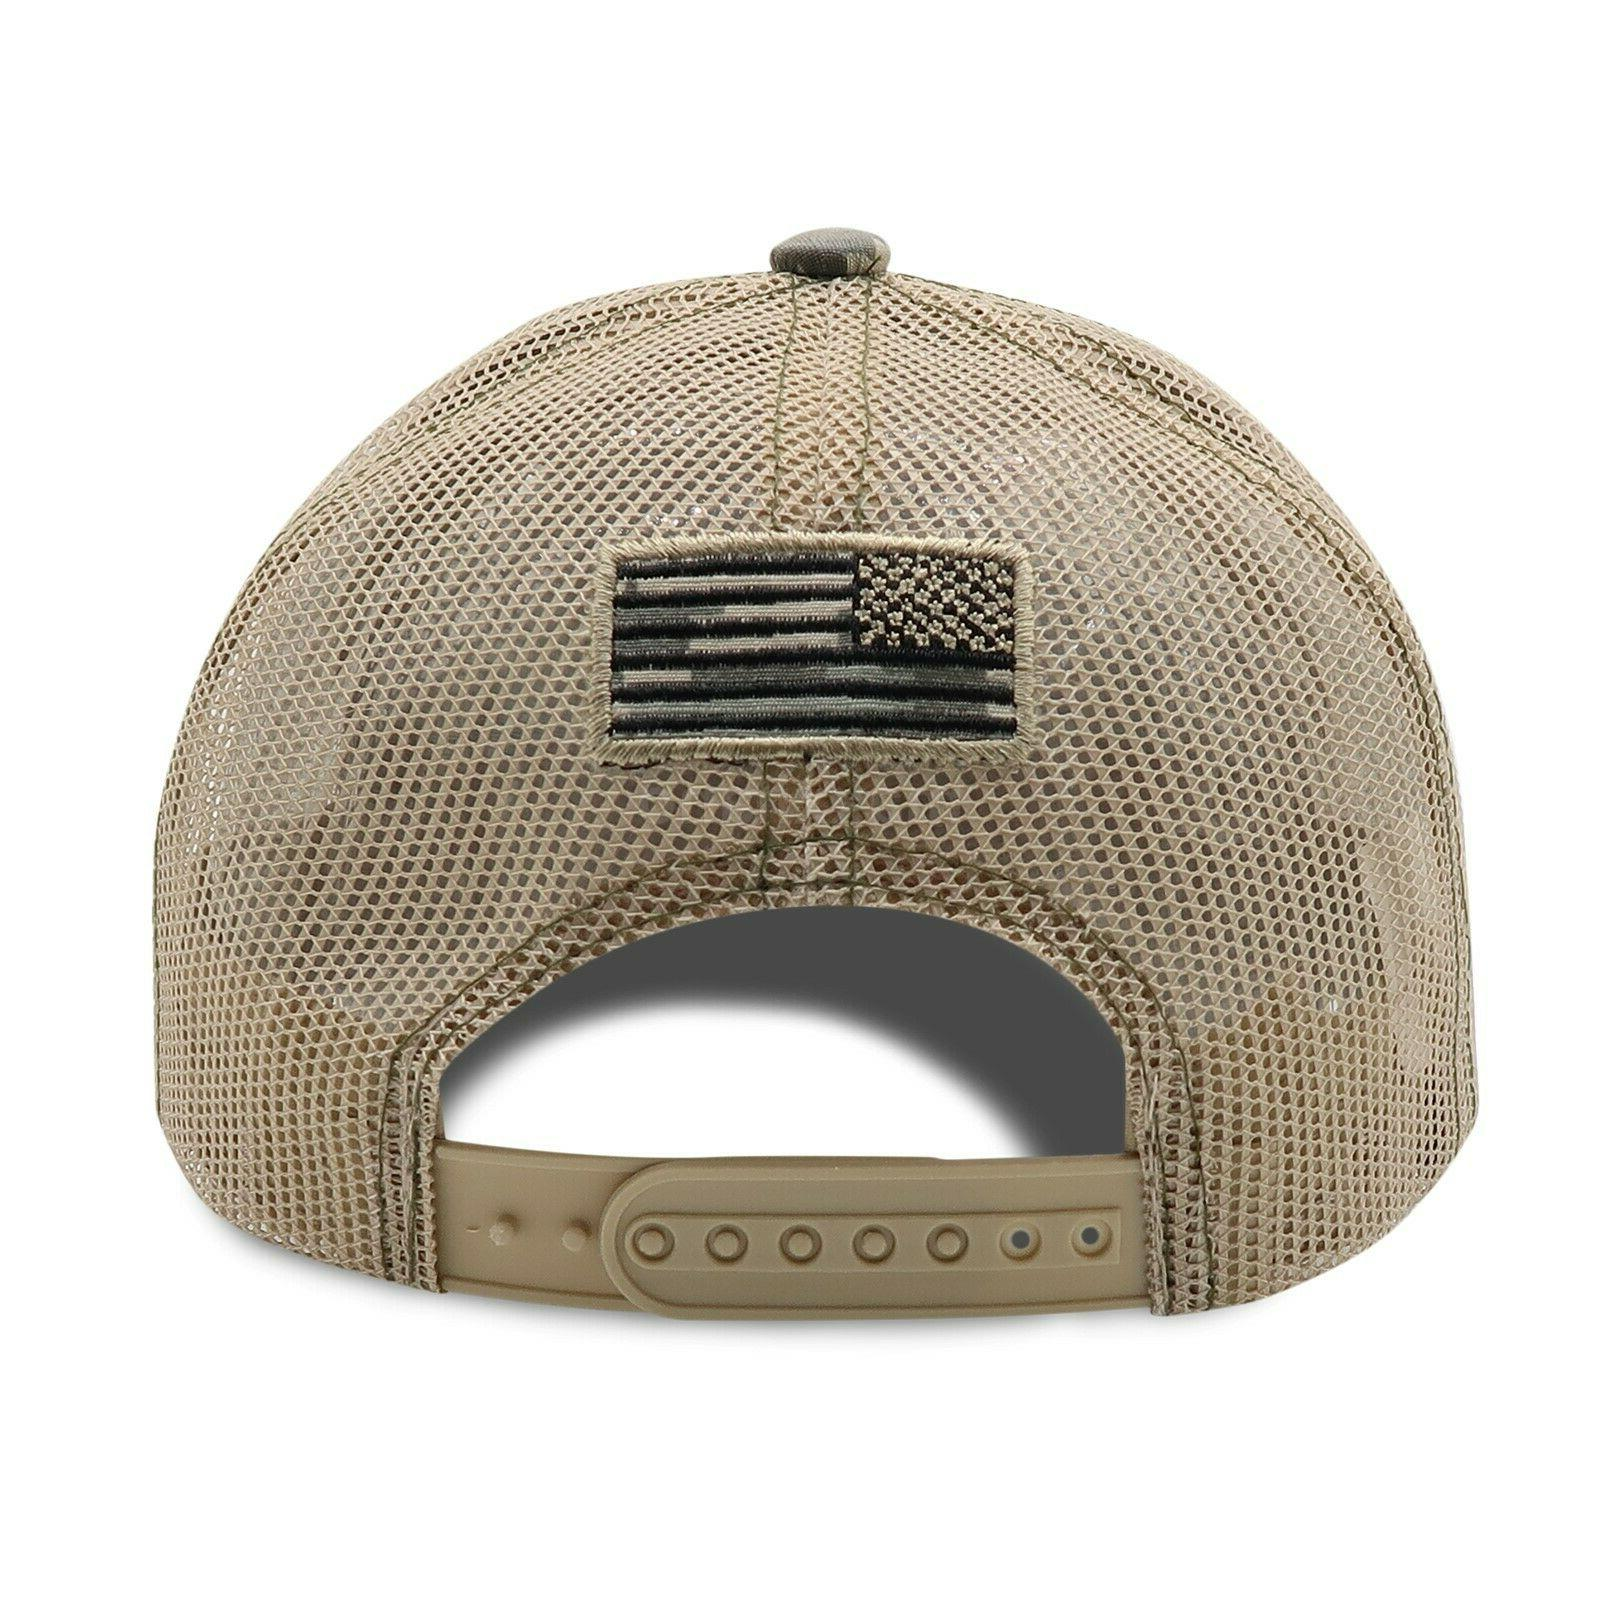 Mens Cotton Baseball USA Army American Tactical Trucker Mesh Hat